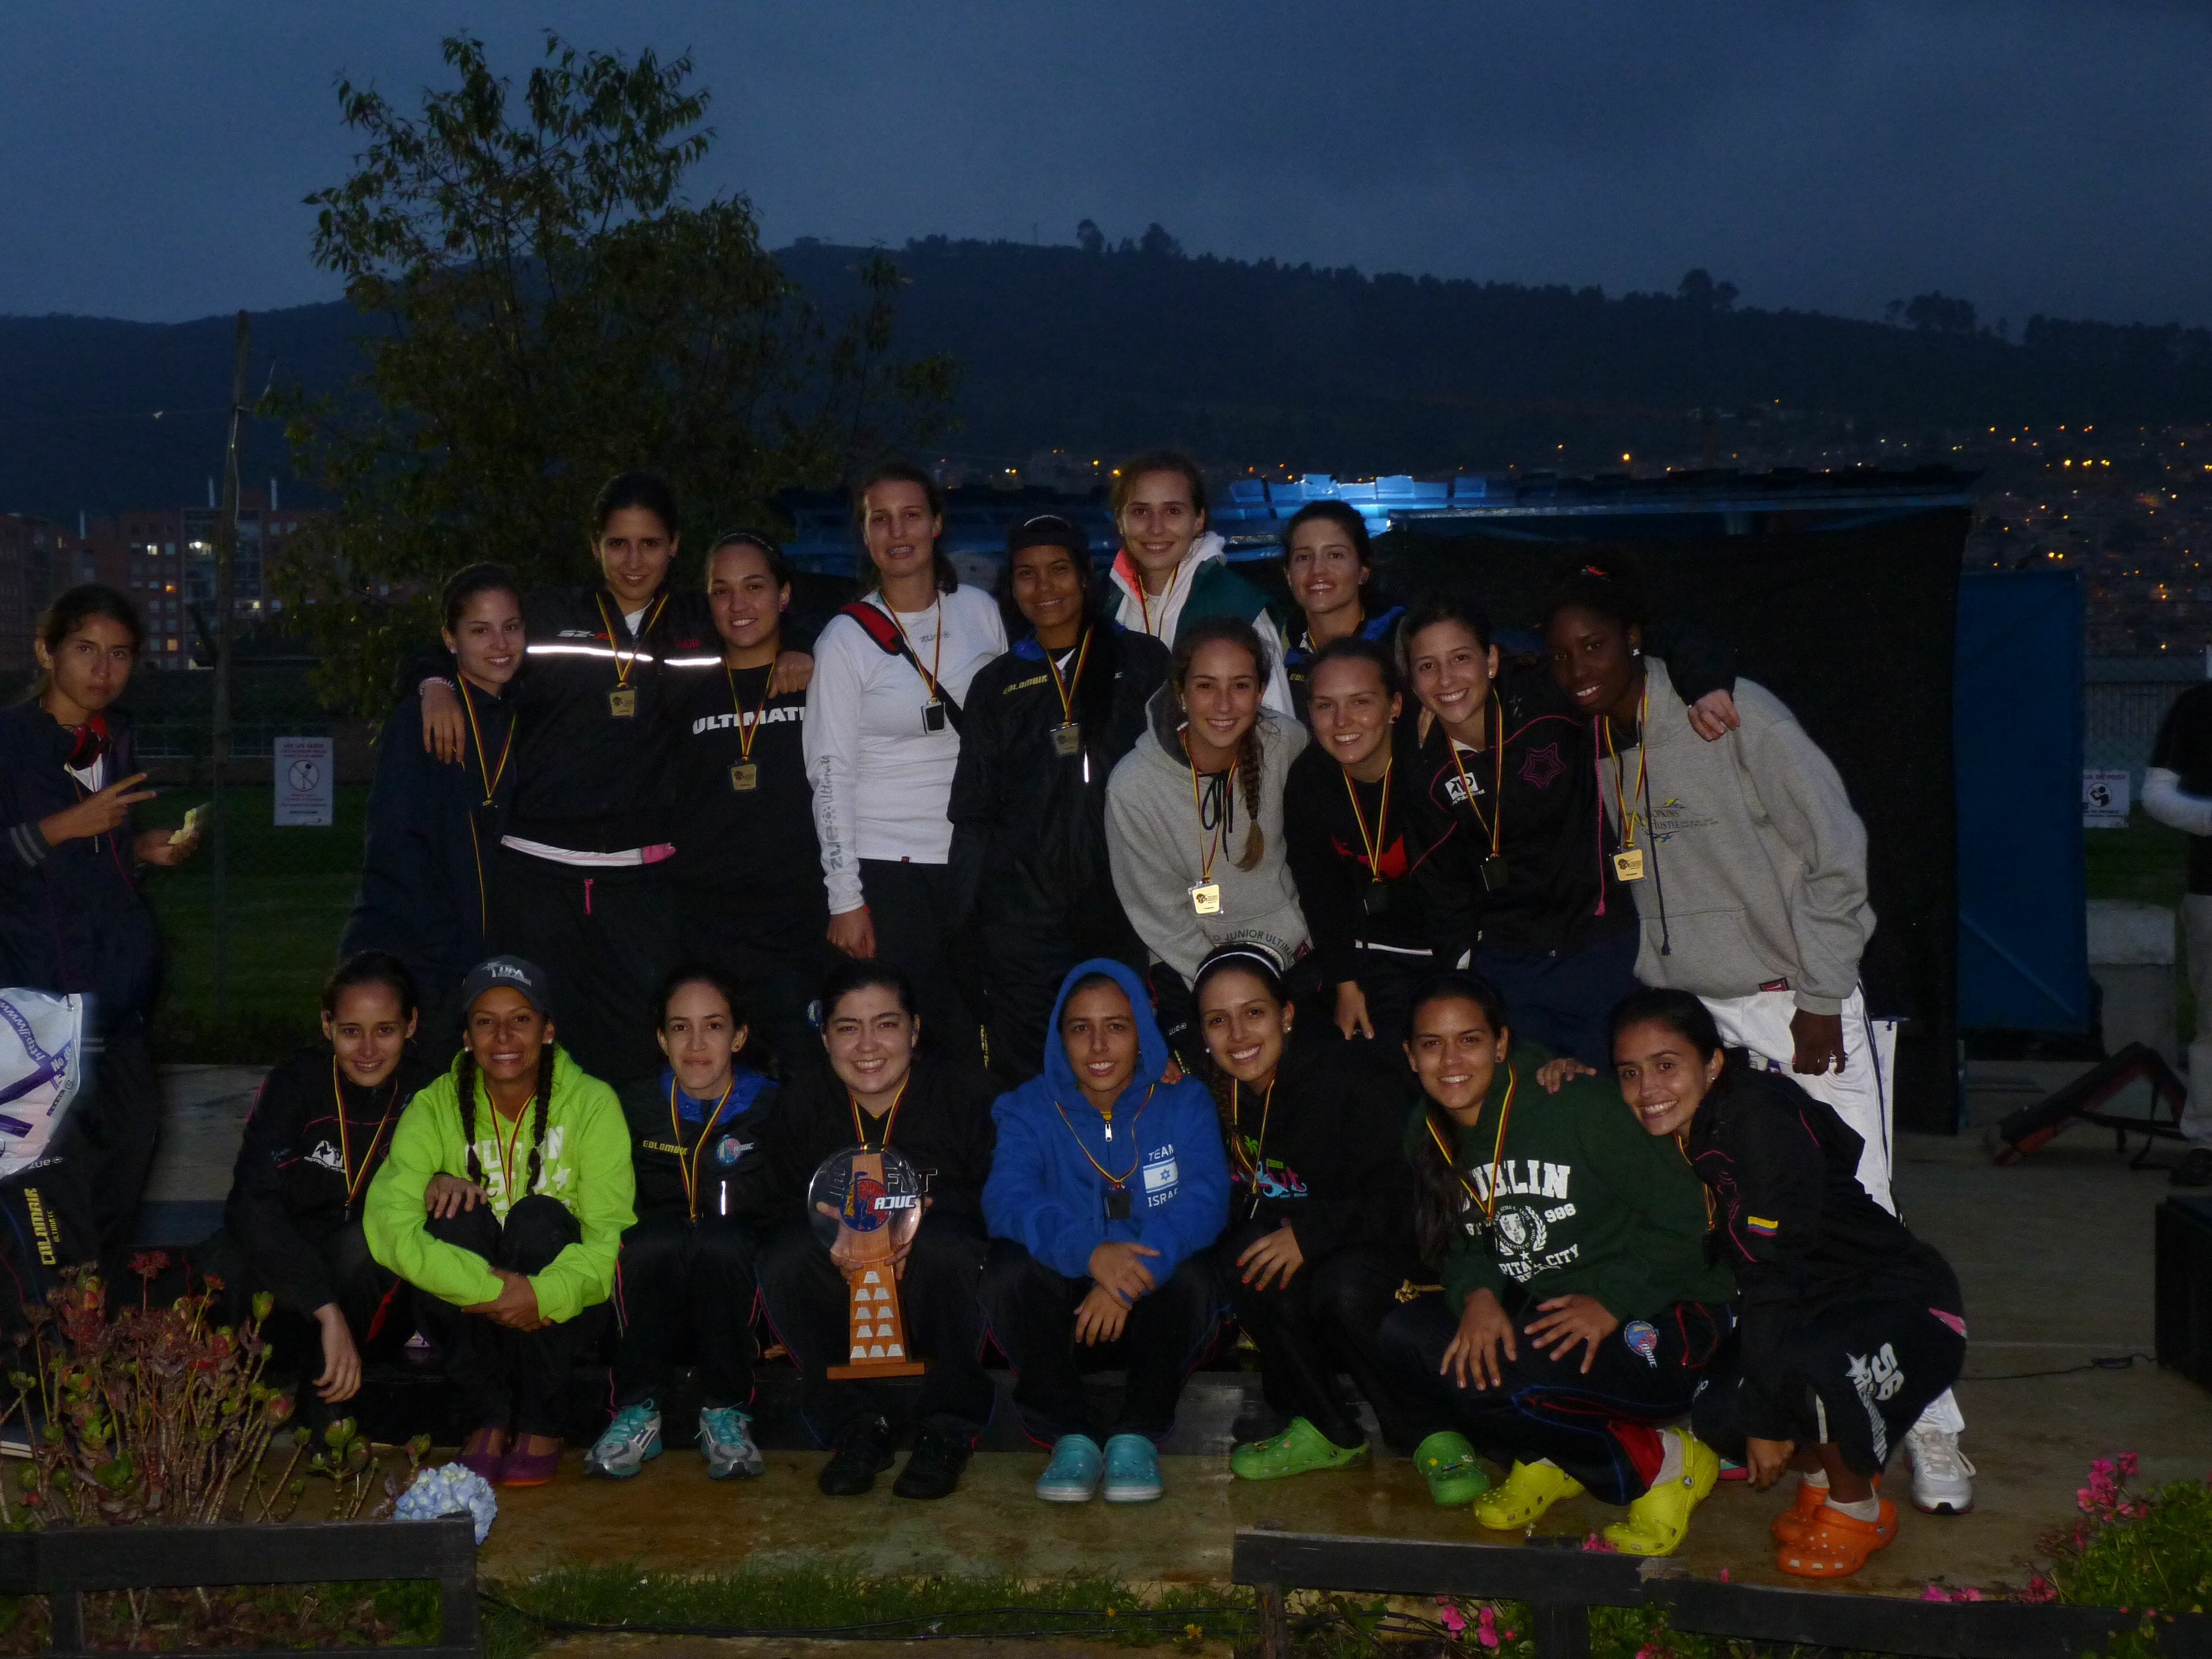 Medellin's Revolution poses for a picture after winning the 2012 AJUC Colombian Nationals.